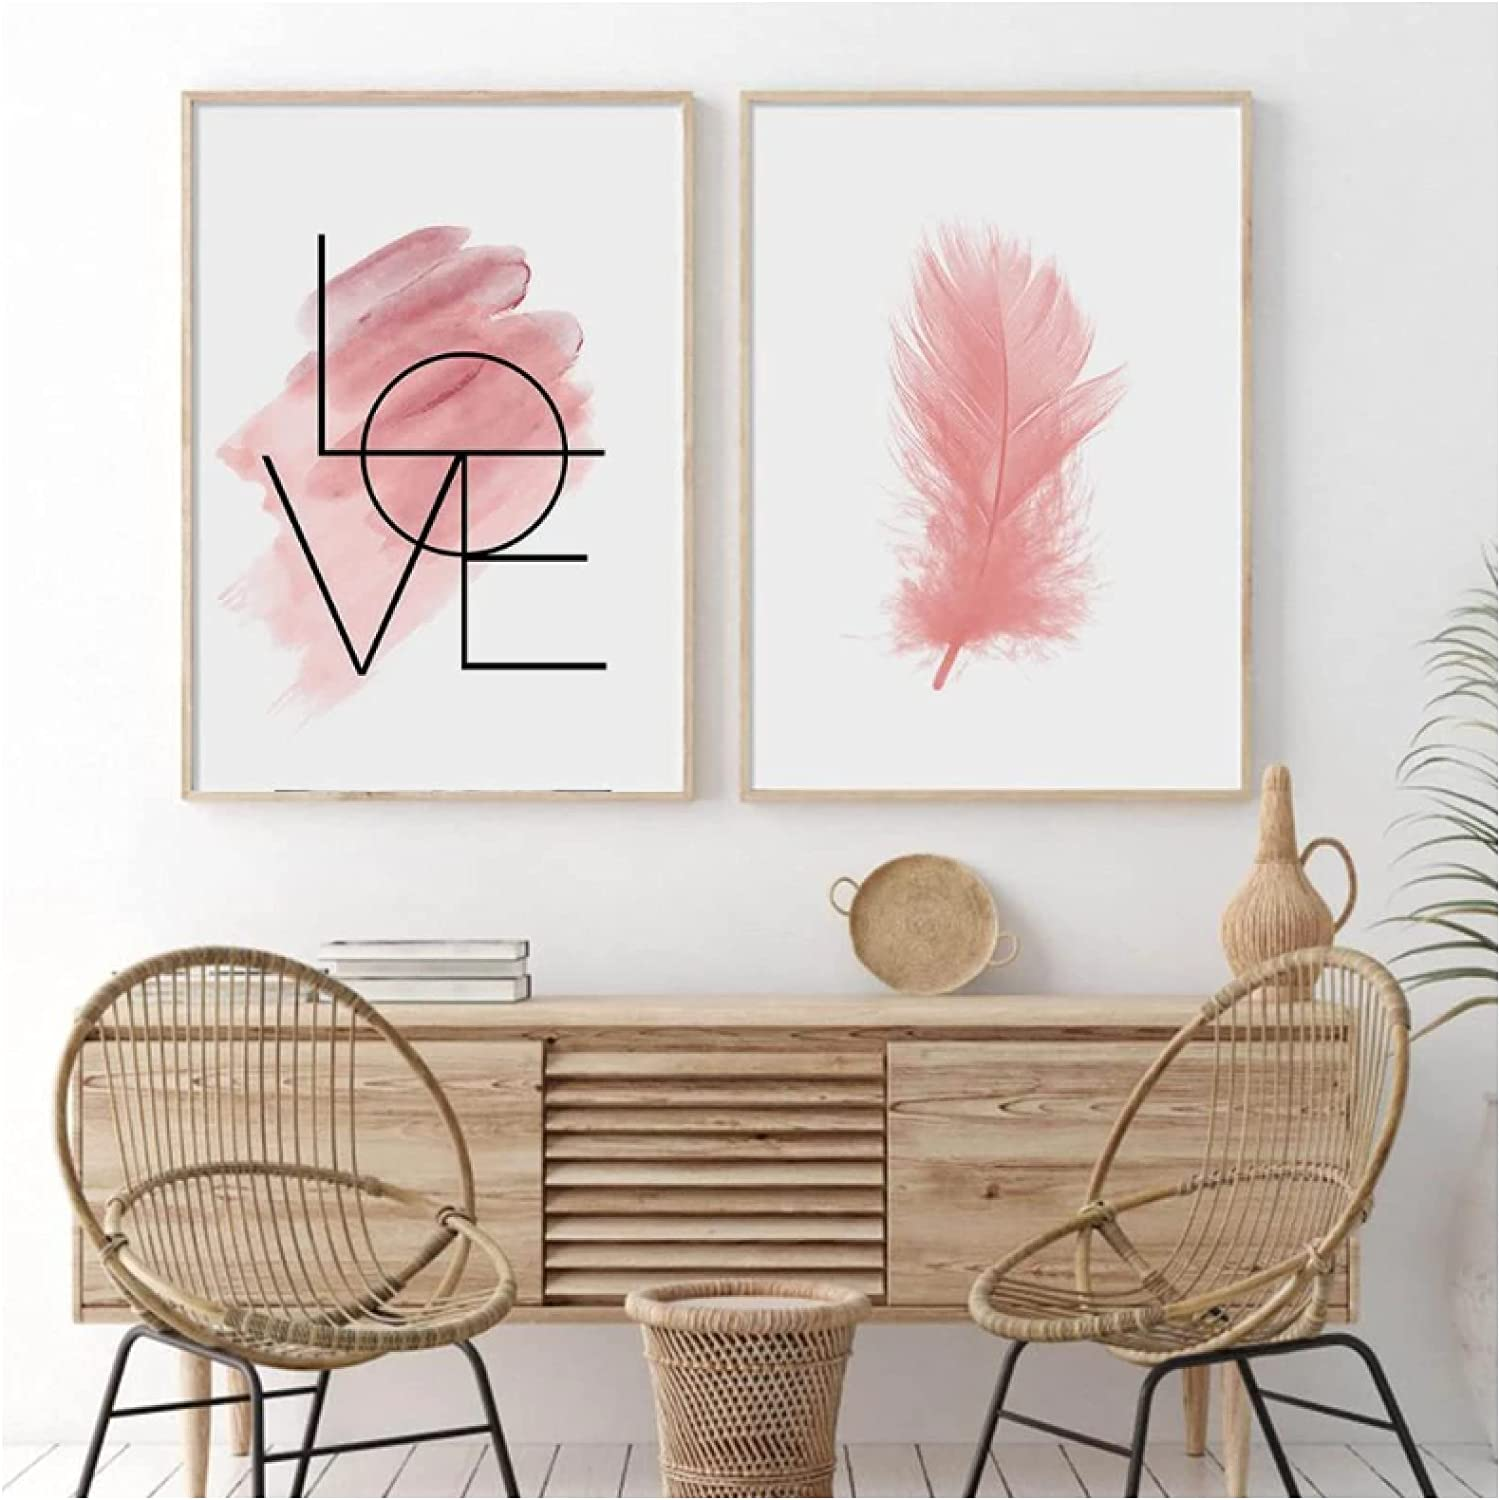 Jhmjqx Popular popular Motivational Love Text Poster Pink Pic Decorative Feather Boston Mall